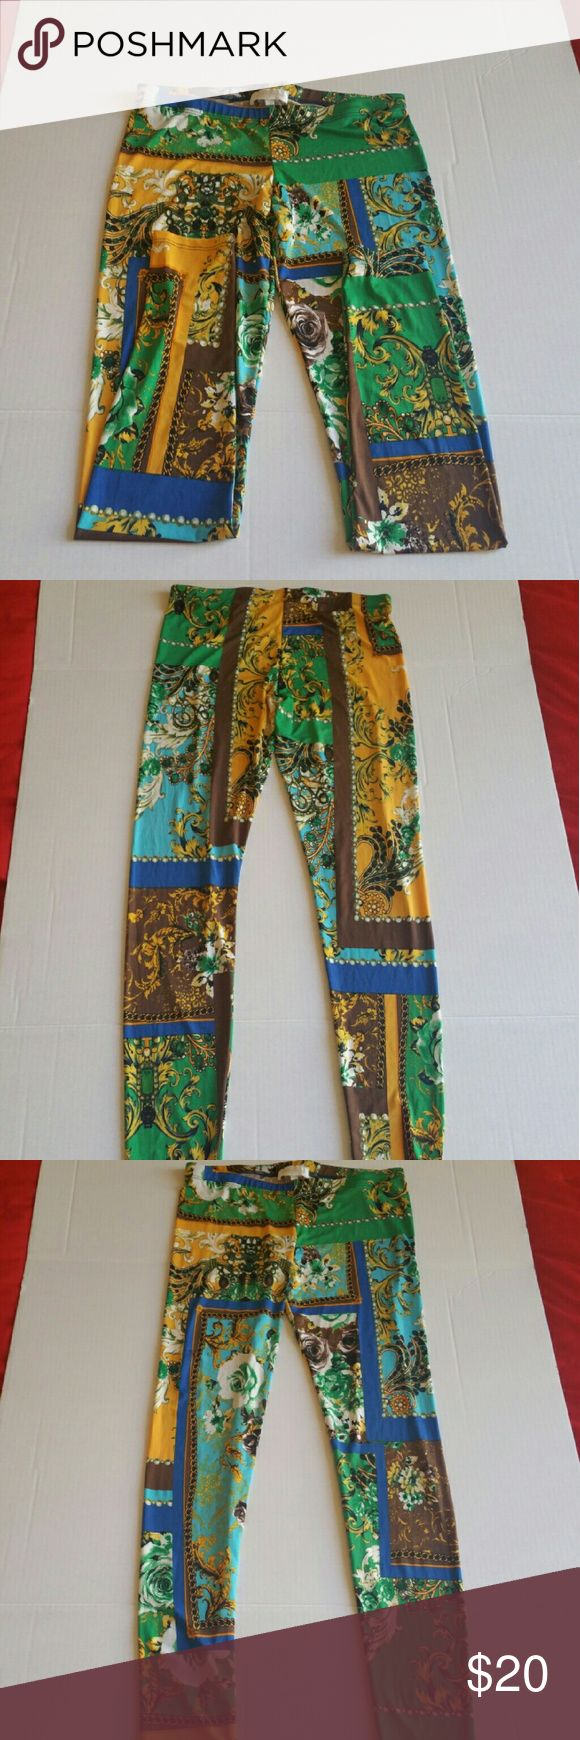 Fun colorful leggings Design pattern similar to Versace pattern, but fun collection from Corrida of Los Angeles. New, never worn. Removed tag to wash with intention to wear, but never did. Corrida Other